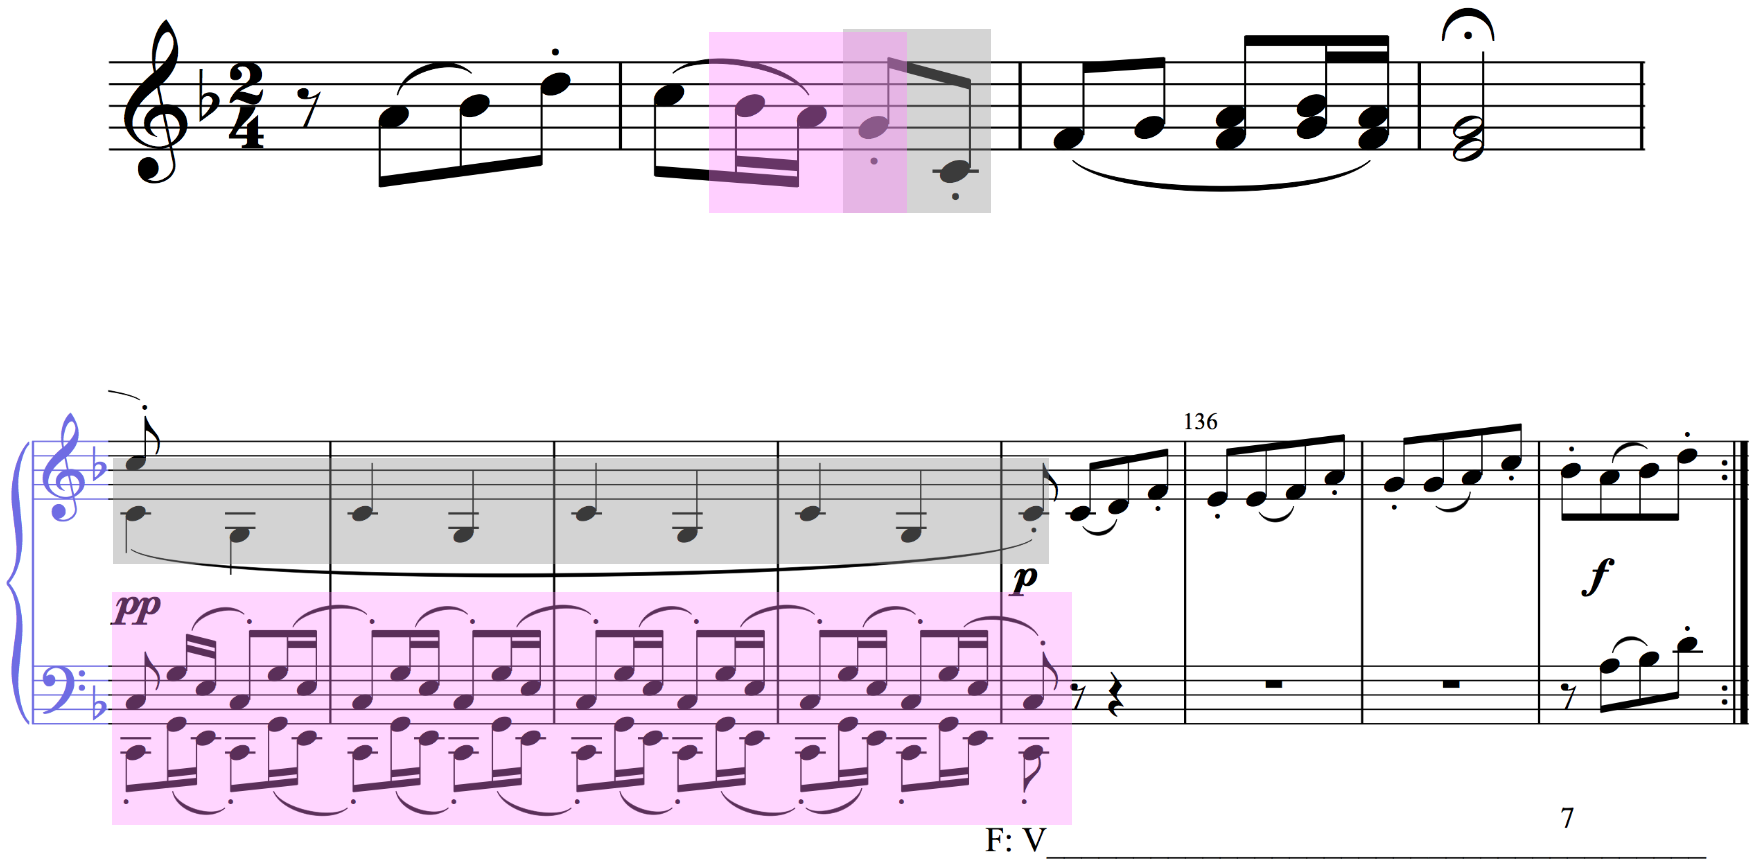 Breaking down motifs (2) - Beethoven's 6th Symphony